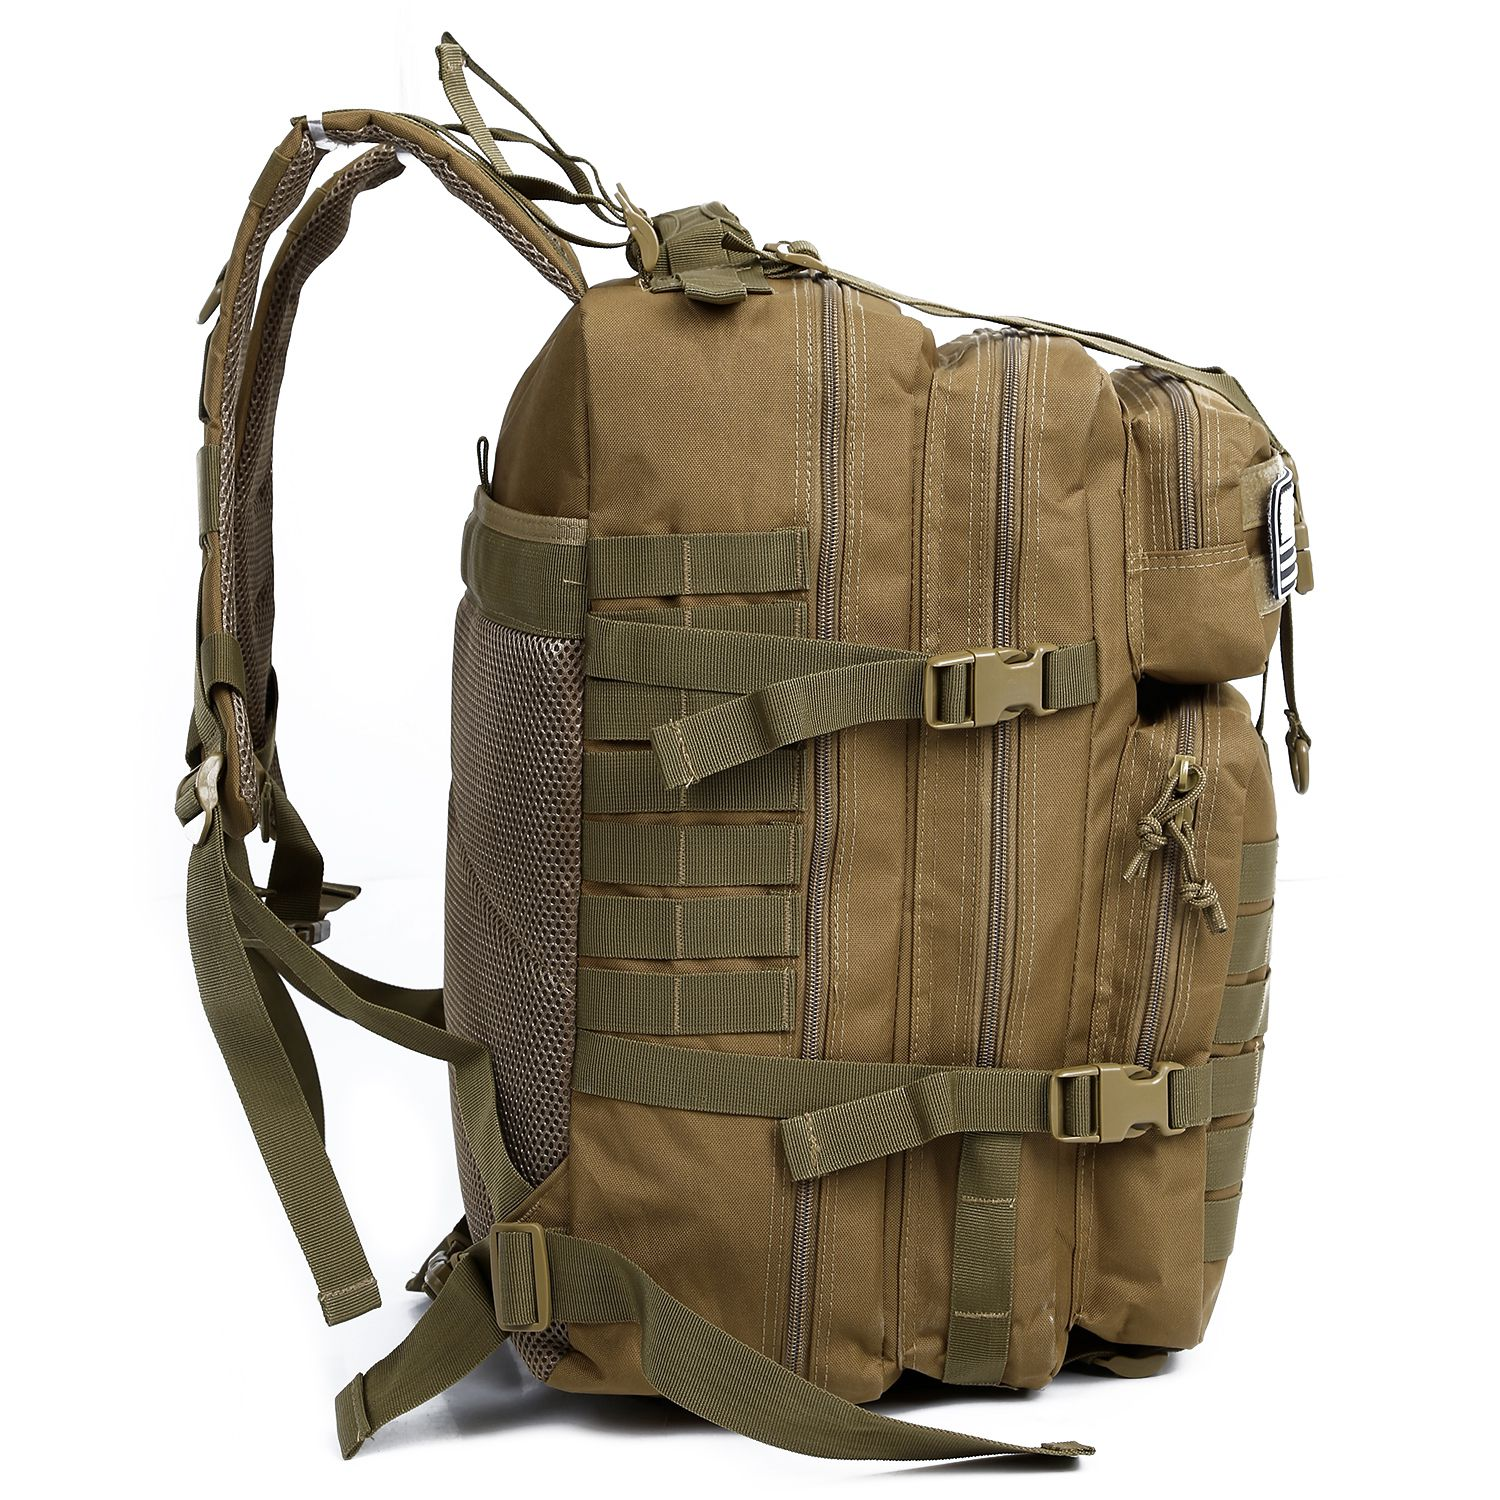 LJL 34L Tactical Assault Pack Backpack Army Molle Waterproof Bug Out Bag Small Rucksack for Outdoor Hiking Camping Hunting(Kha 34l military tactical assault pack backpack army molle waterproof bug out bag small rucksack for outdoor hiking camping hunting